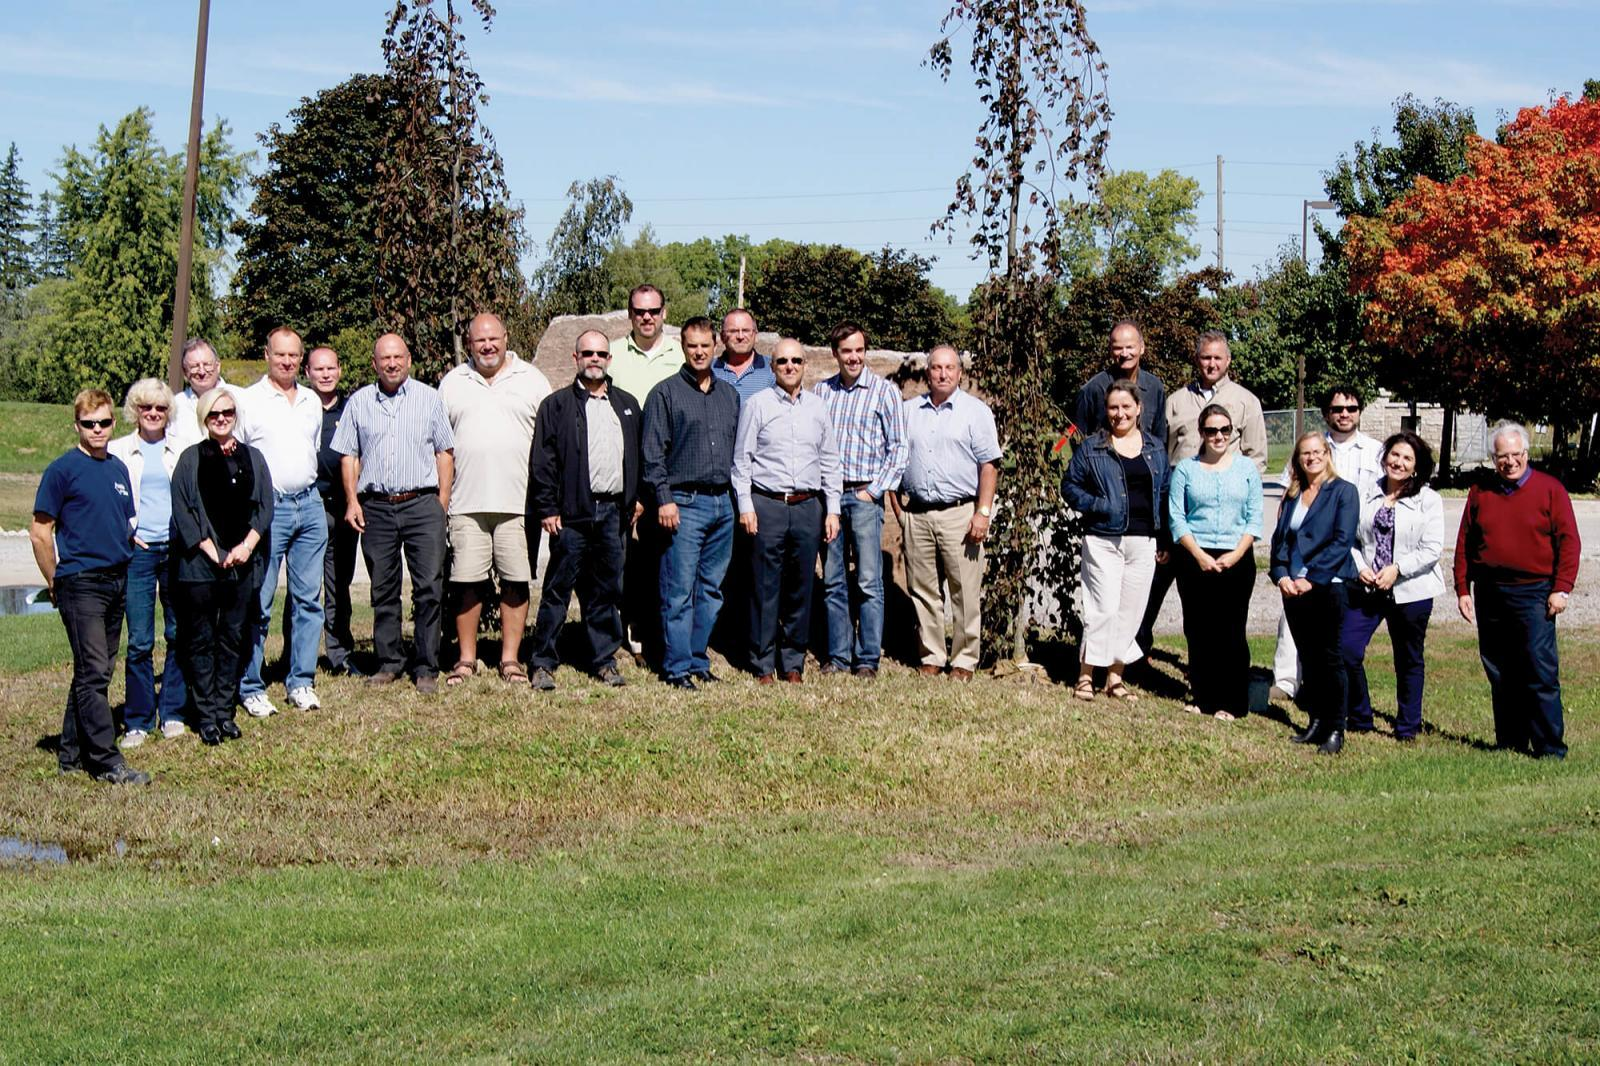 Landscape Ontario members celebrate National Tree Day 2013